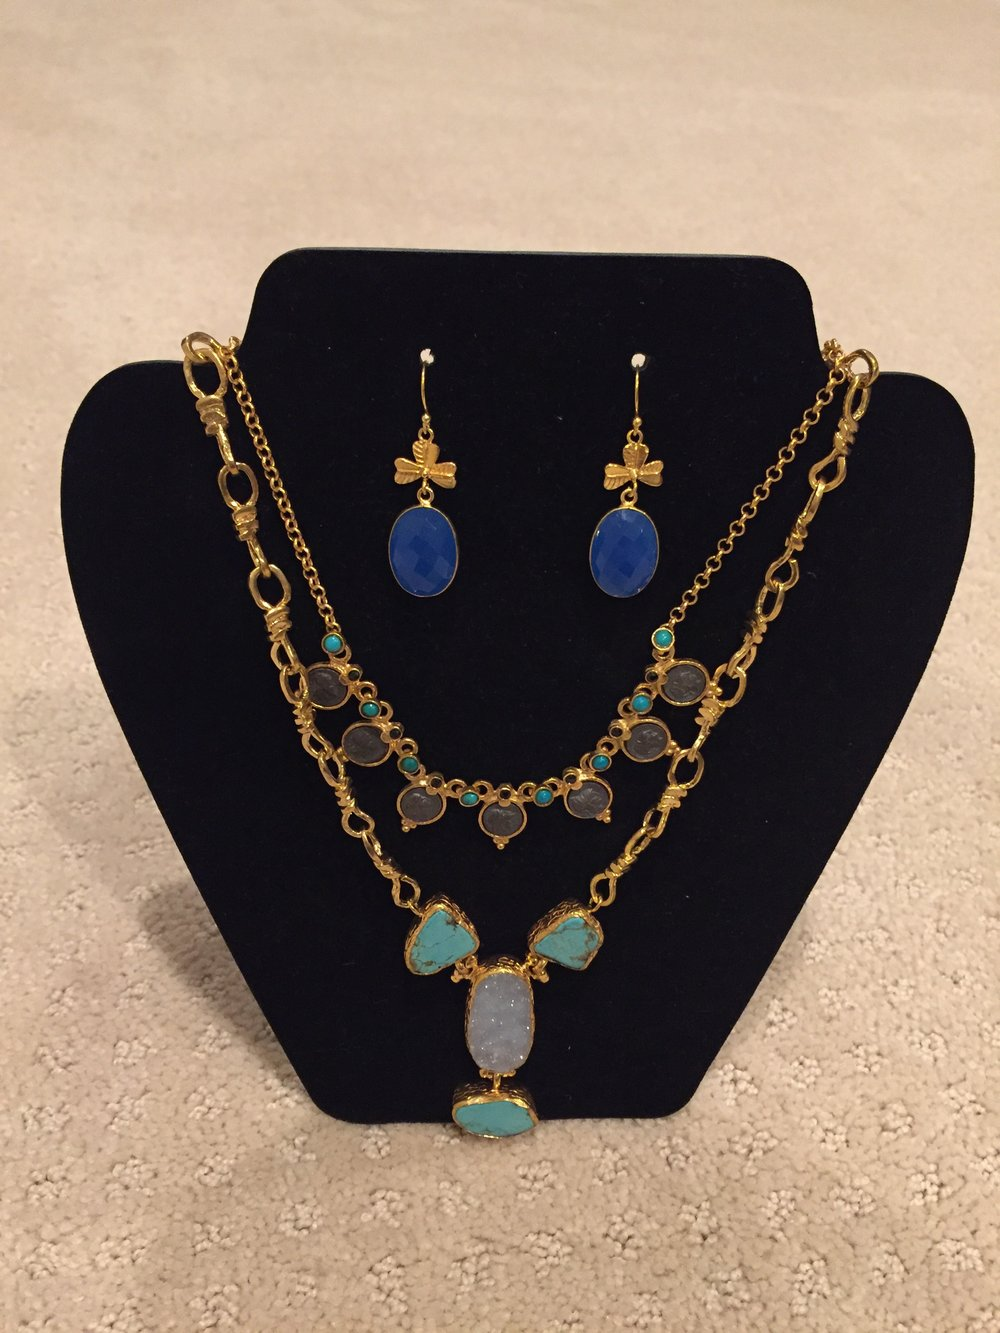 Blues and Gold Jewelry Collection - This collection includes two necklaces and a pair of earrings.